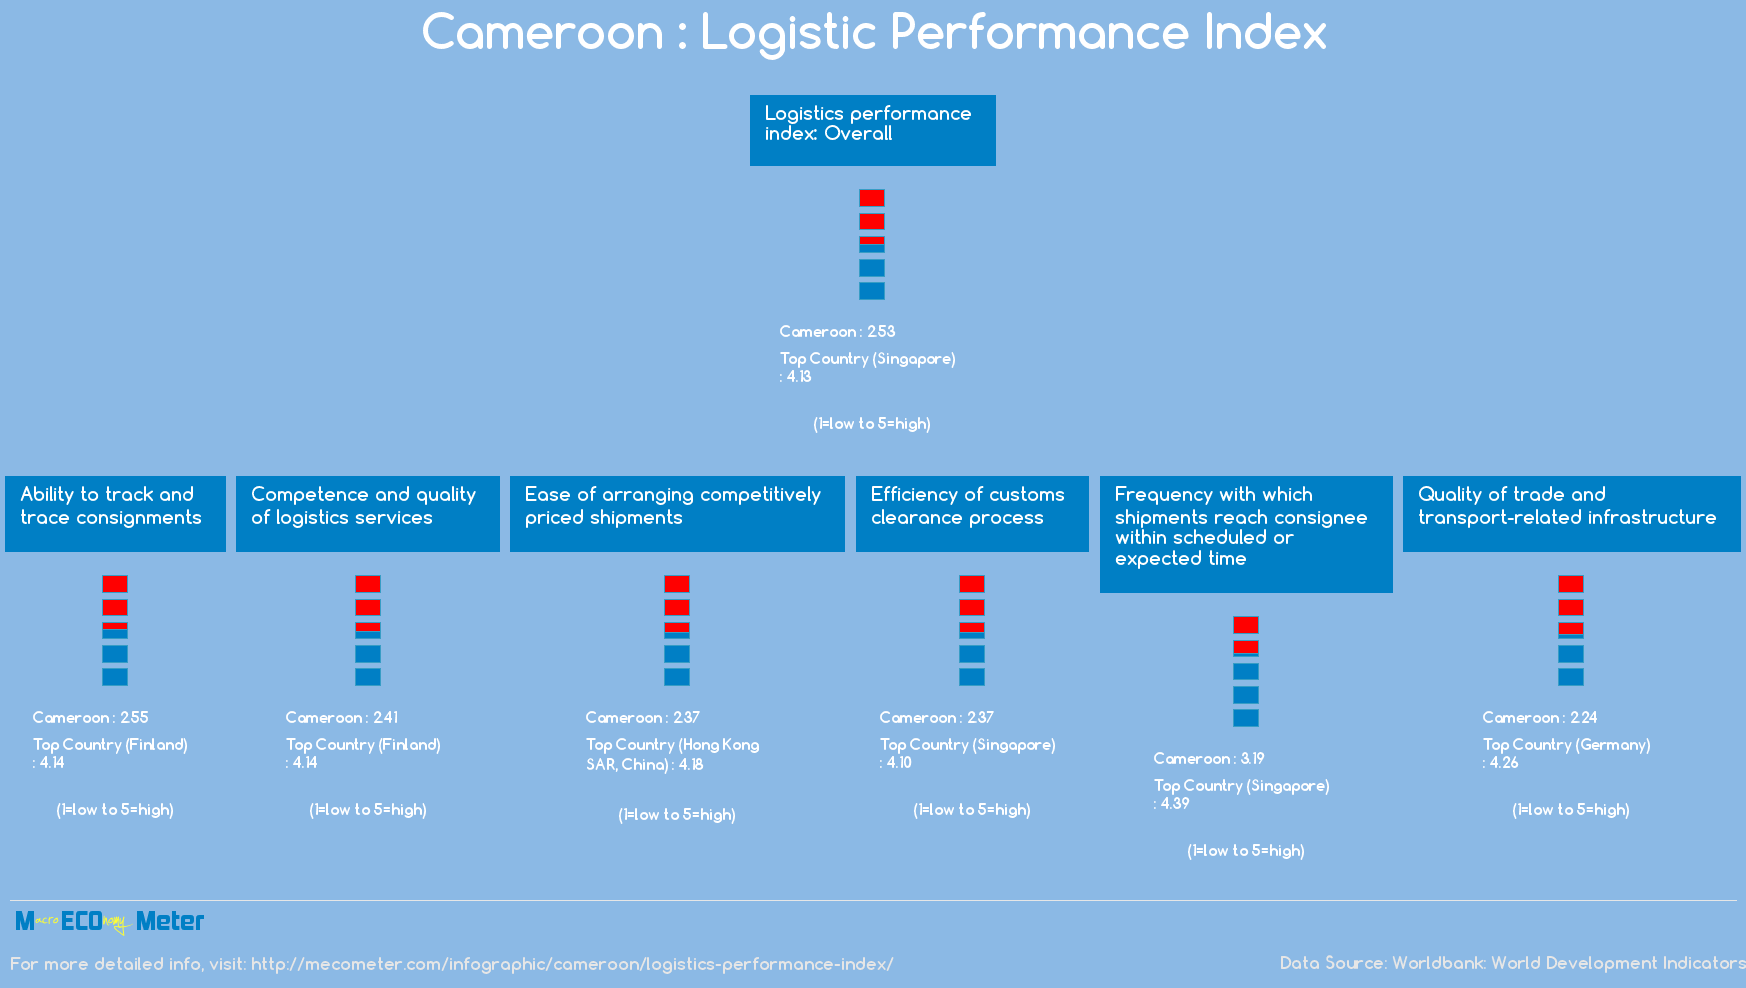 Cameroon : Logistic Performance Index